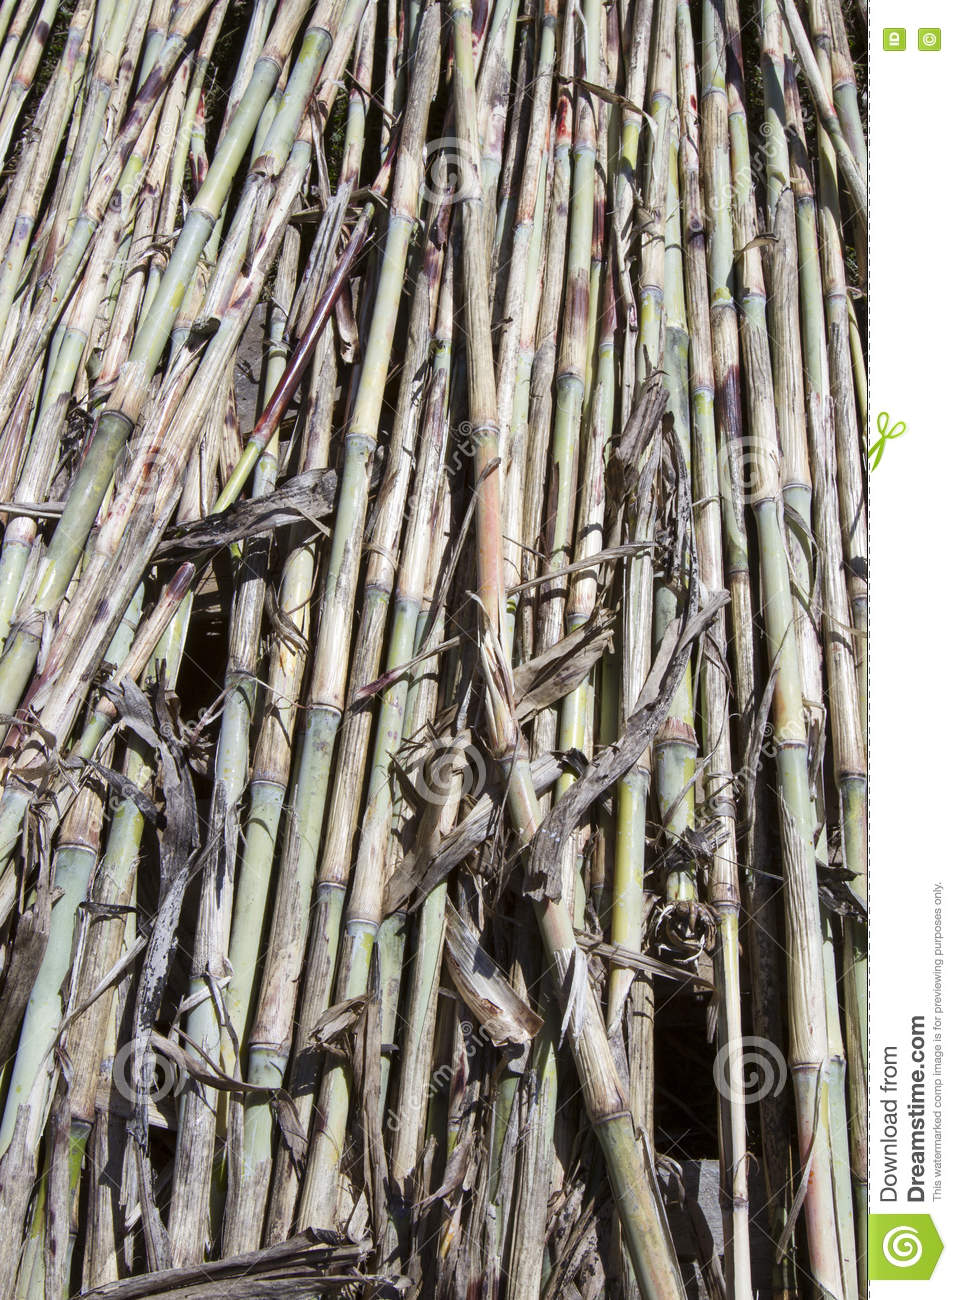 Sugar Cane on The Run - Eat The Weeds and other things, too |Sugar Cane Stalks